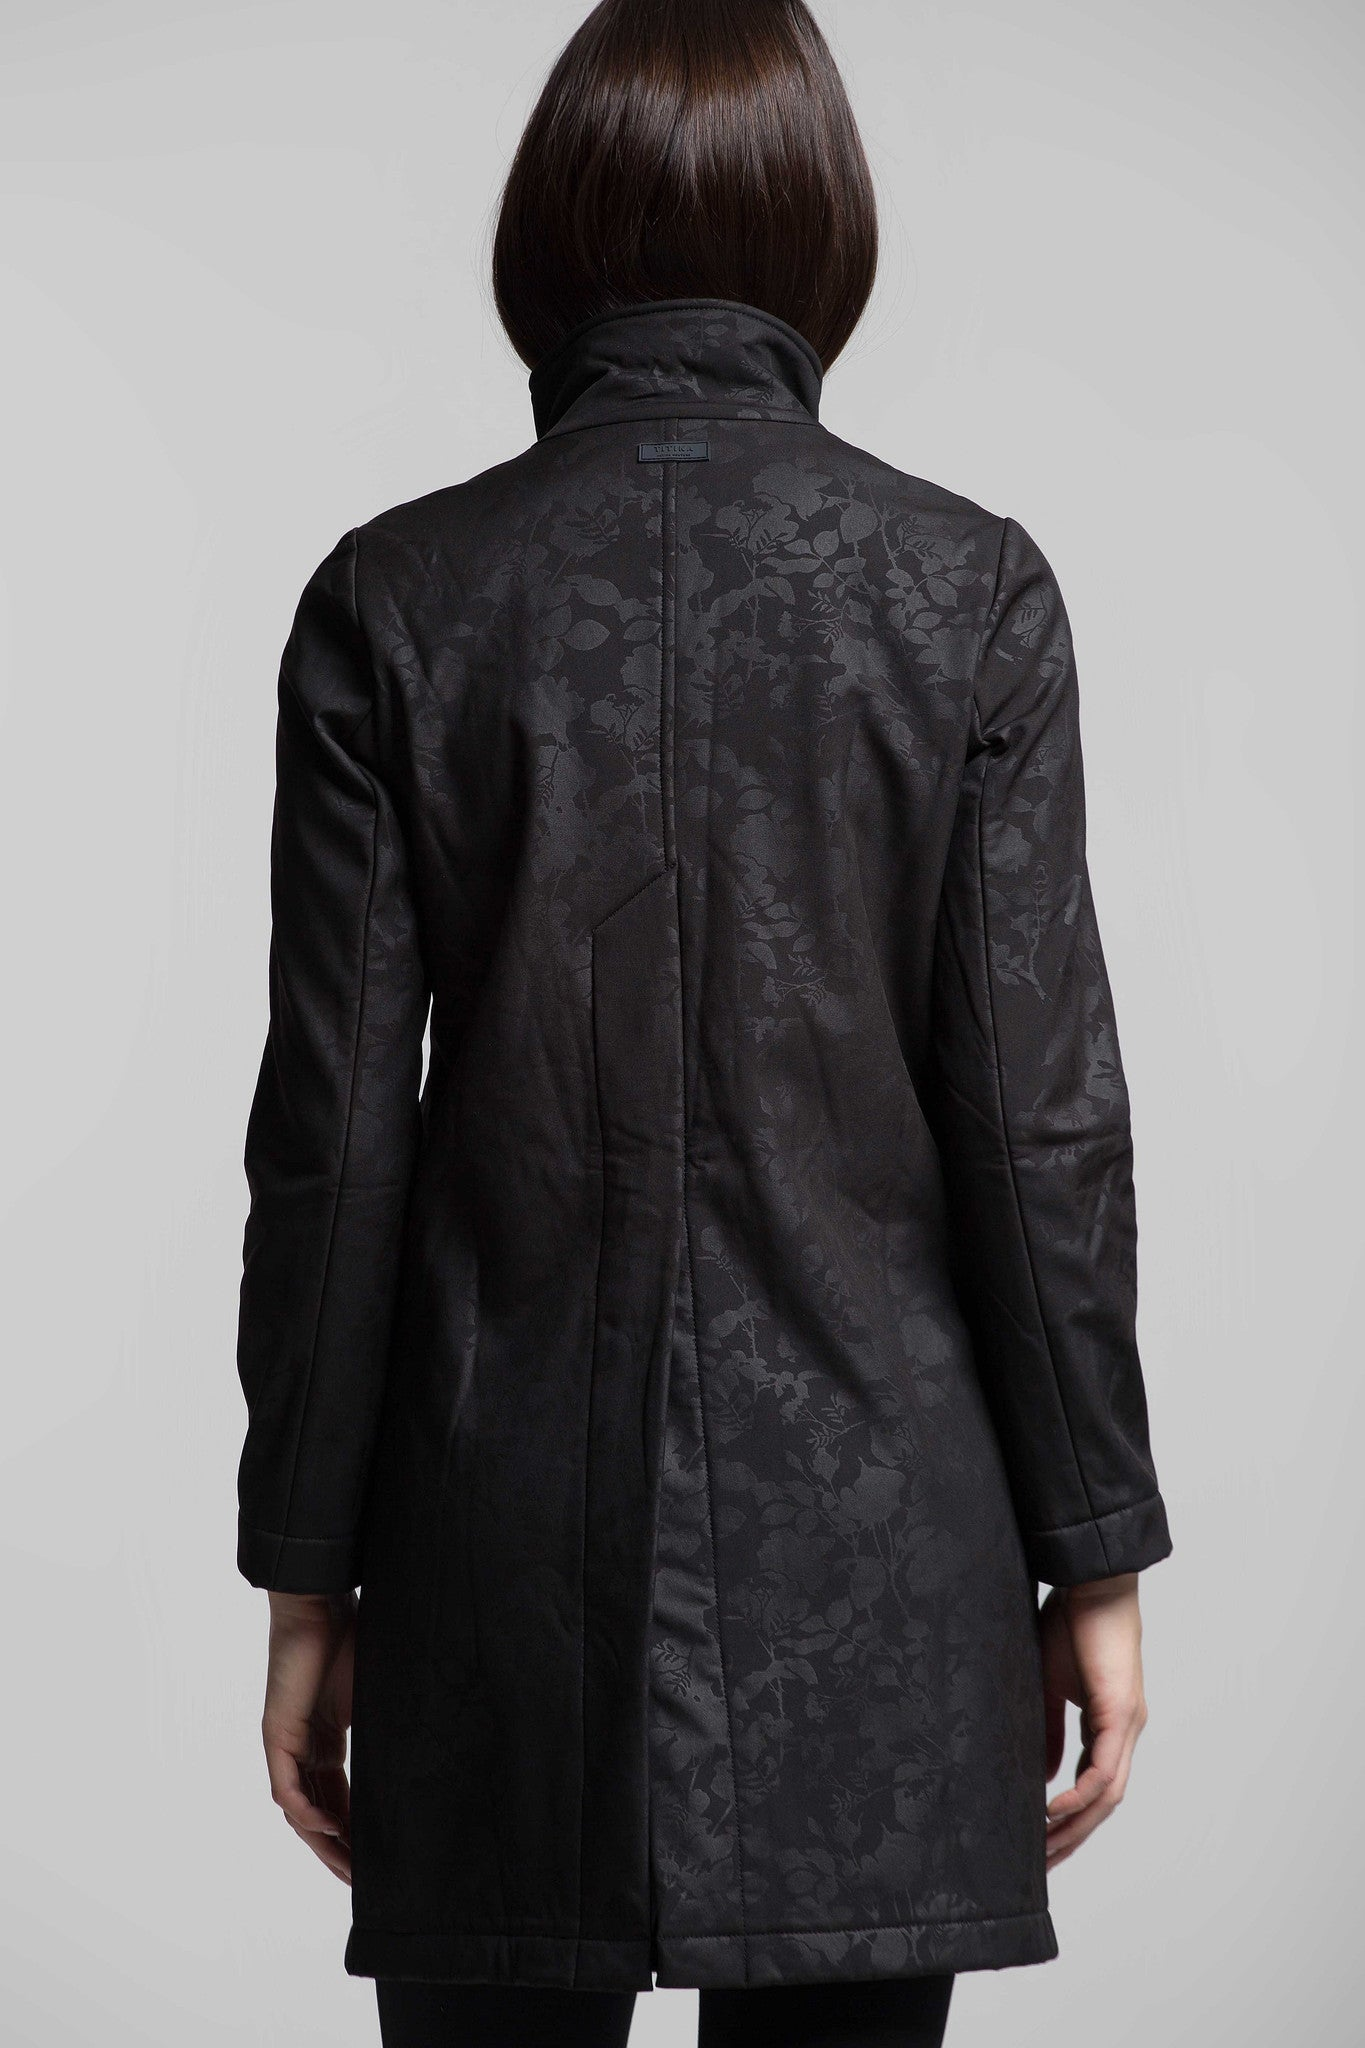 Elisian Fleece Lined Reflective Jacket